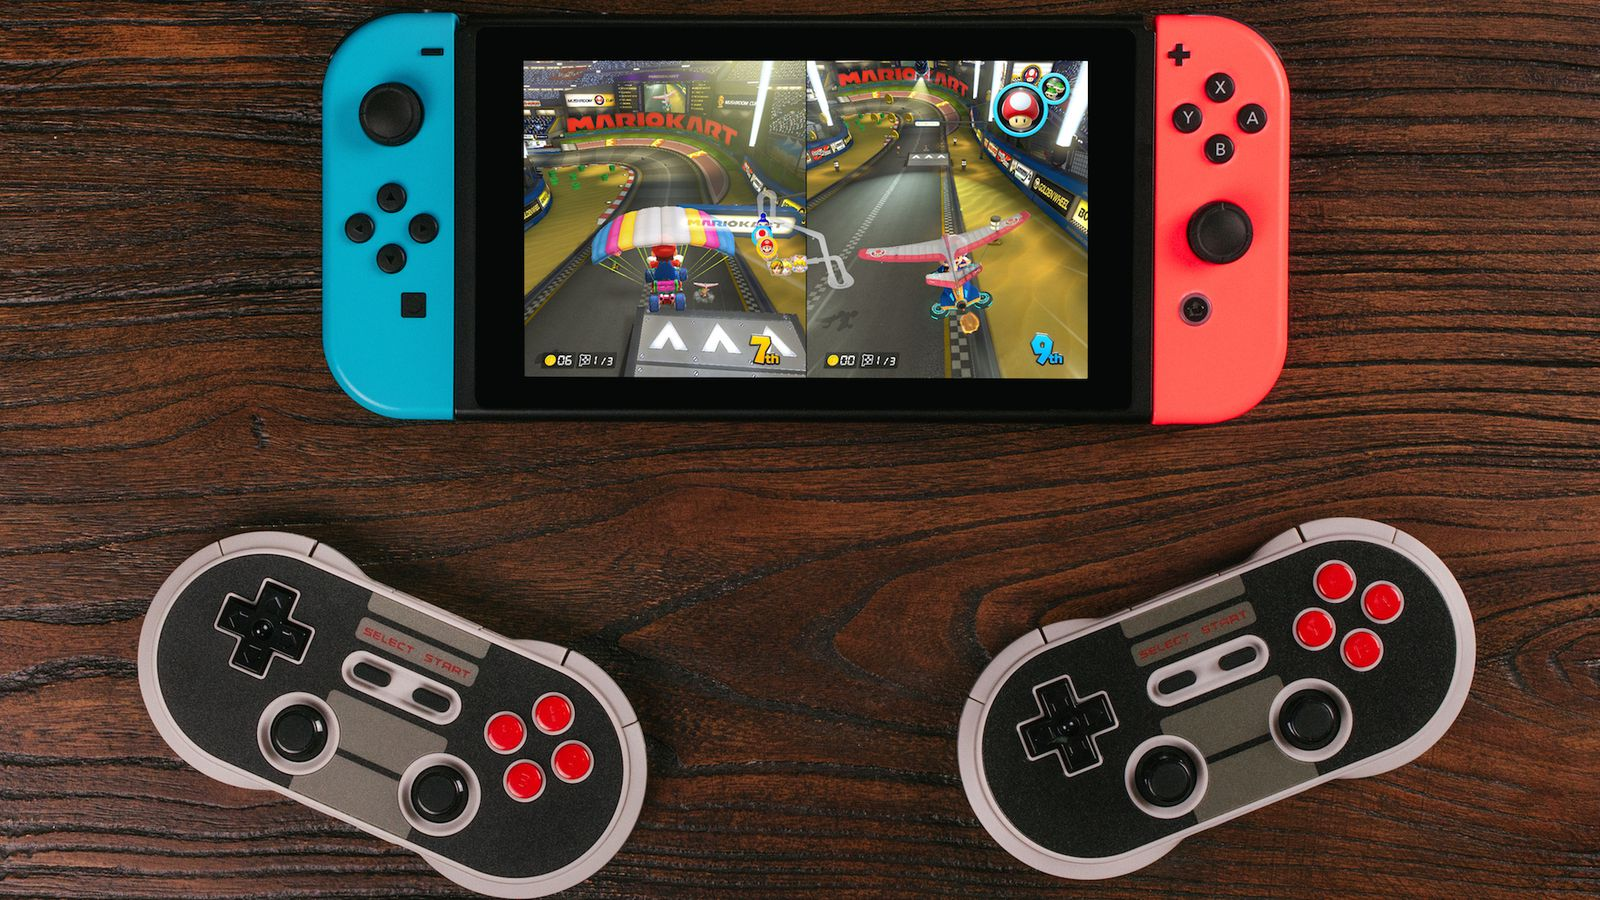 8bitdo's NES30 Pro Controller is an Almost Perfect Nintendo Switch Companion